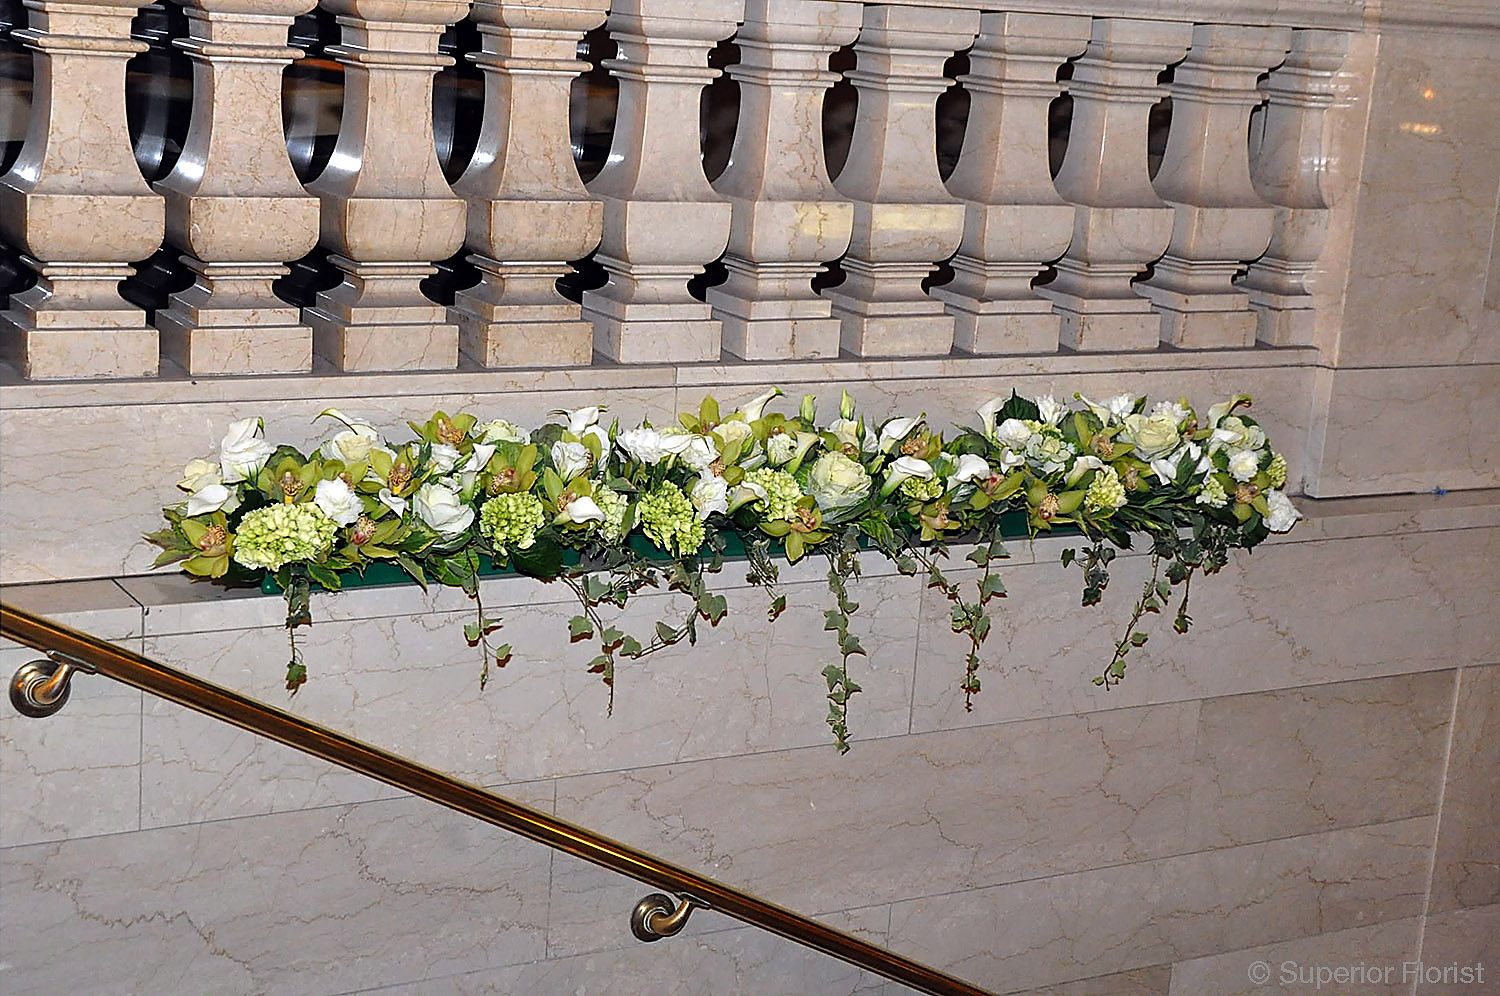 Superior Florist – Wedding Décor:  Floral decoration on staircase ledge at Grand Central Terminal, NYC.